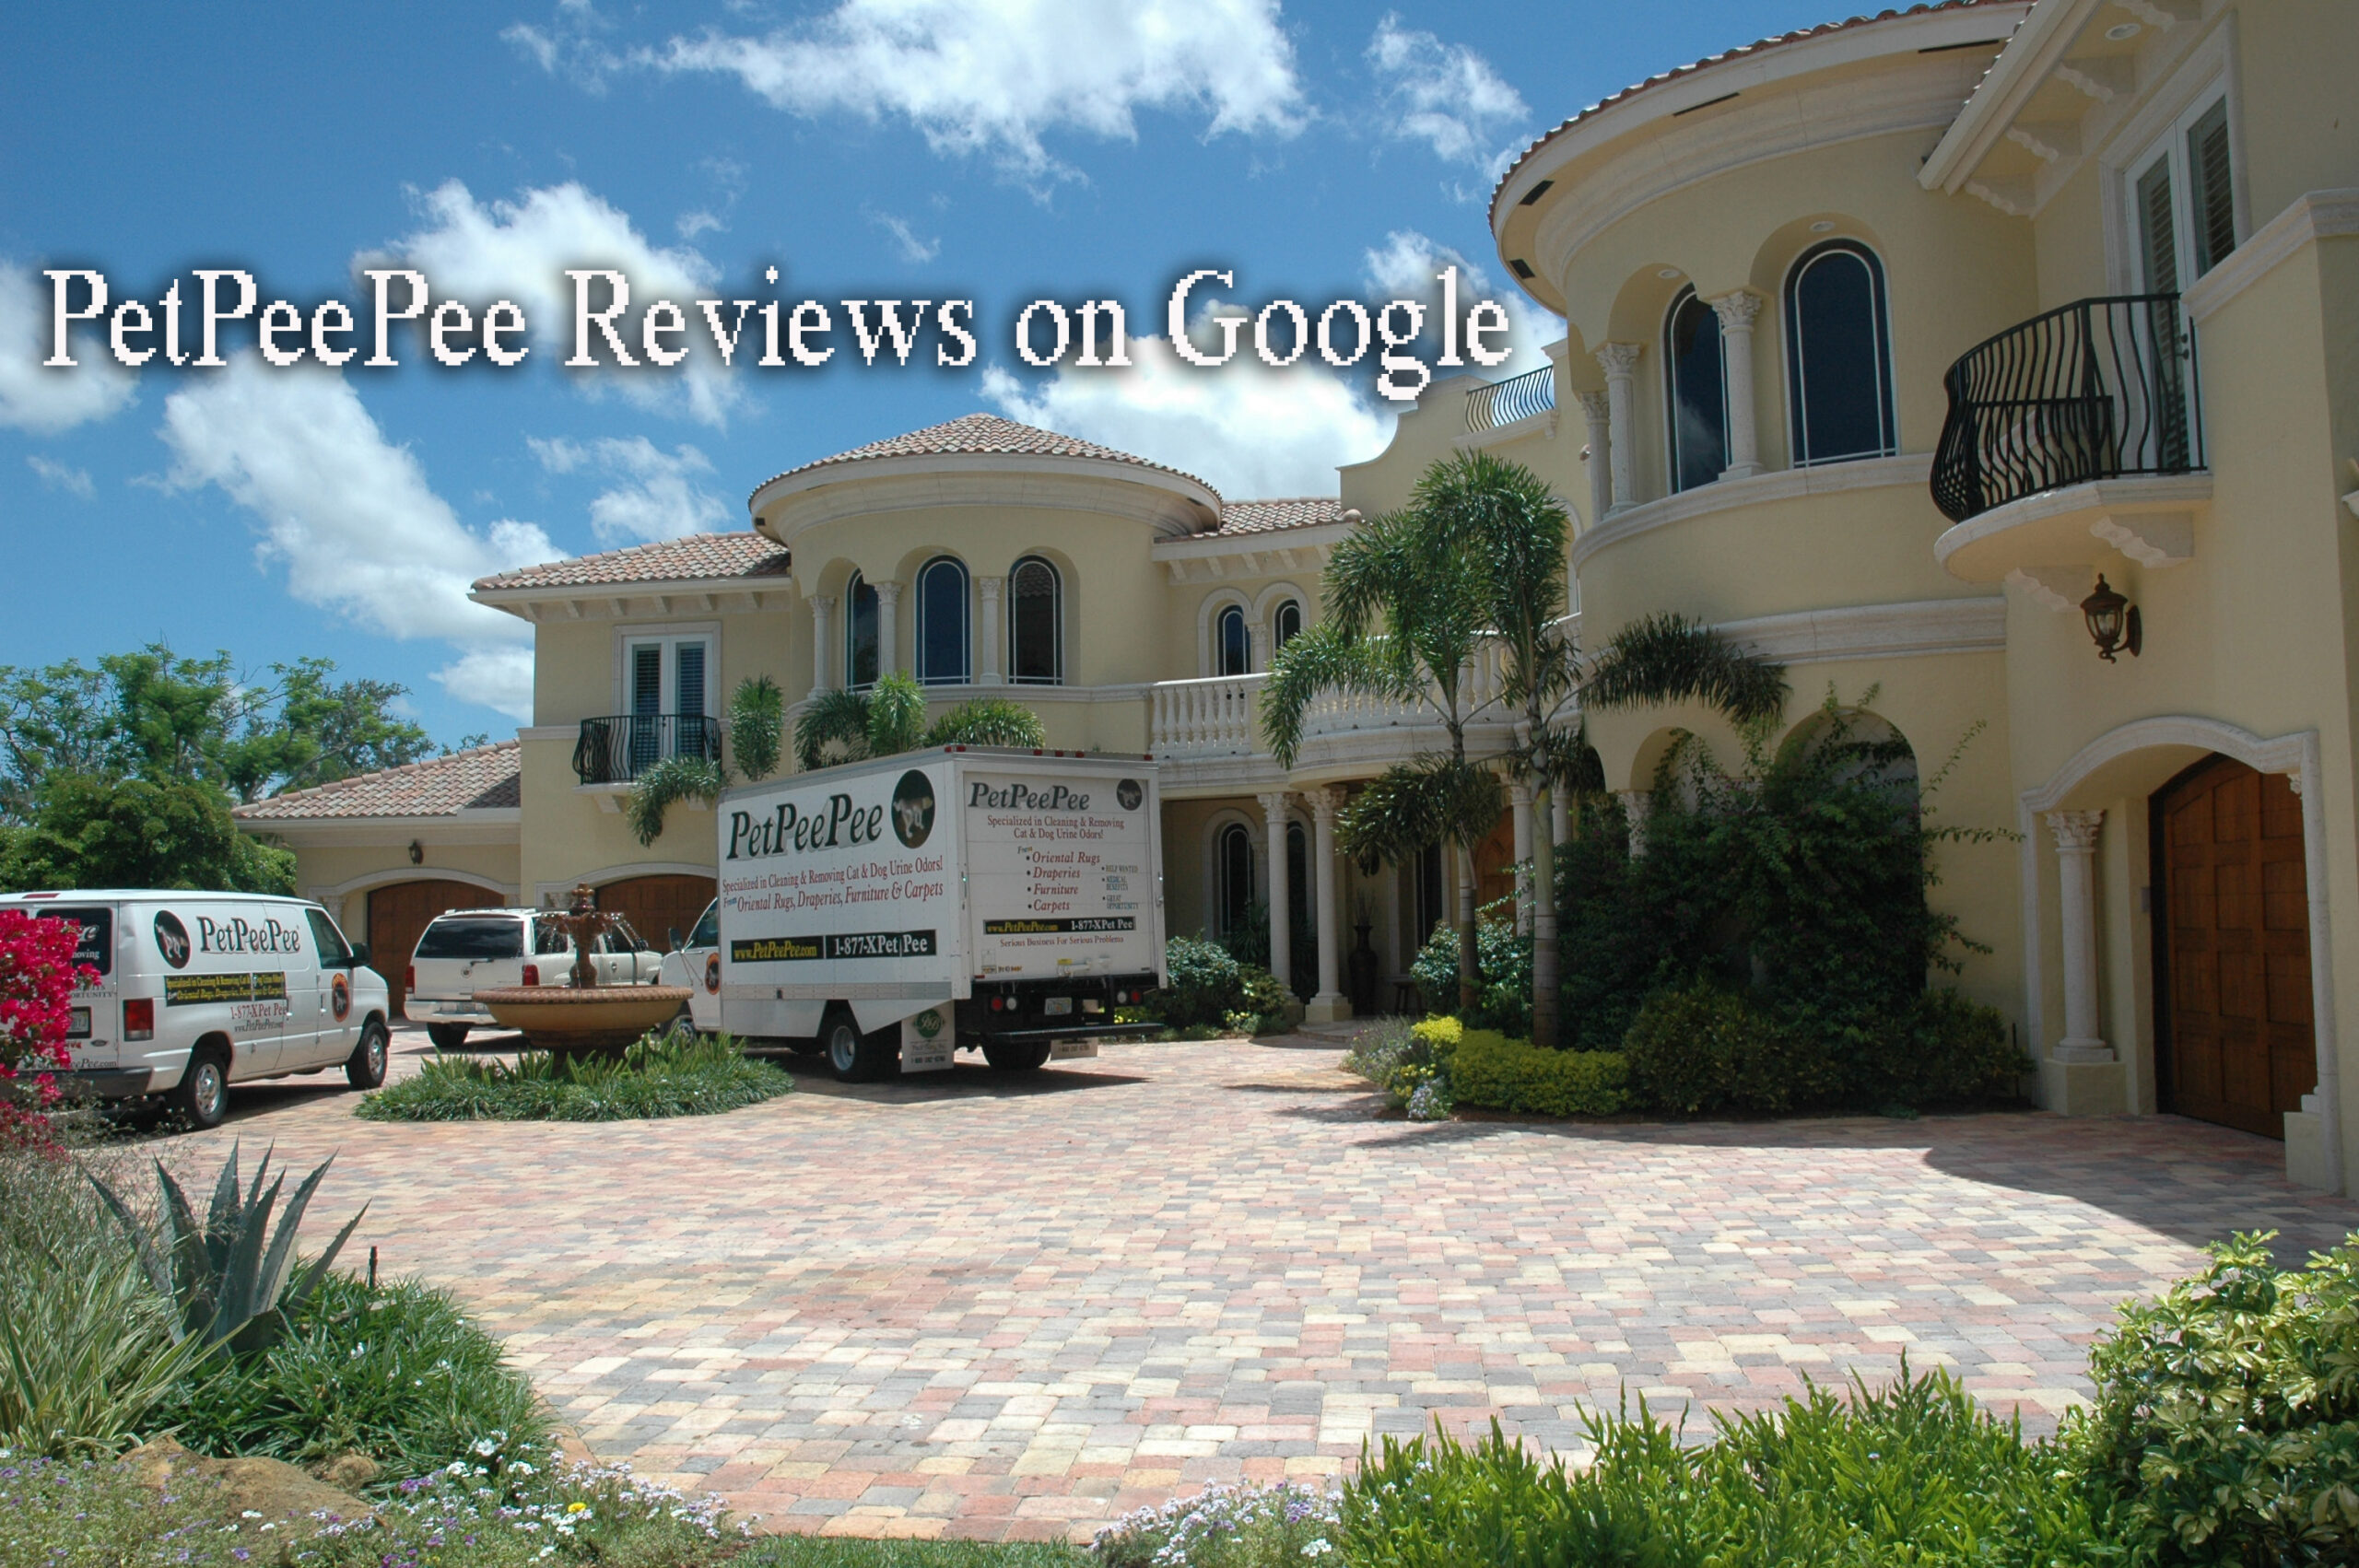 PetPeePee review on Google